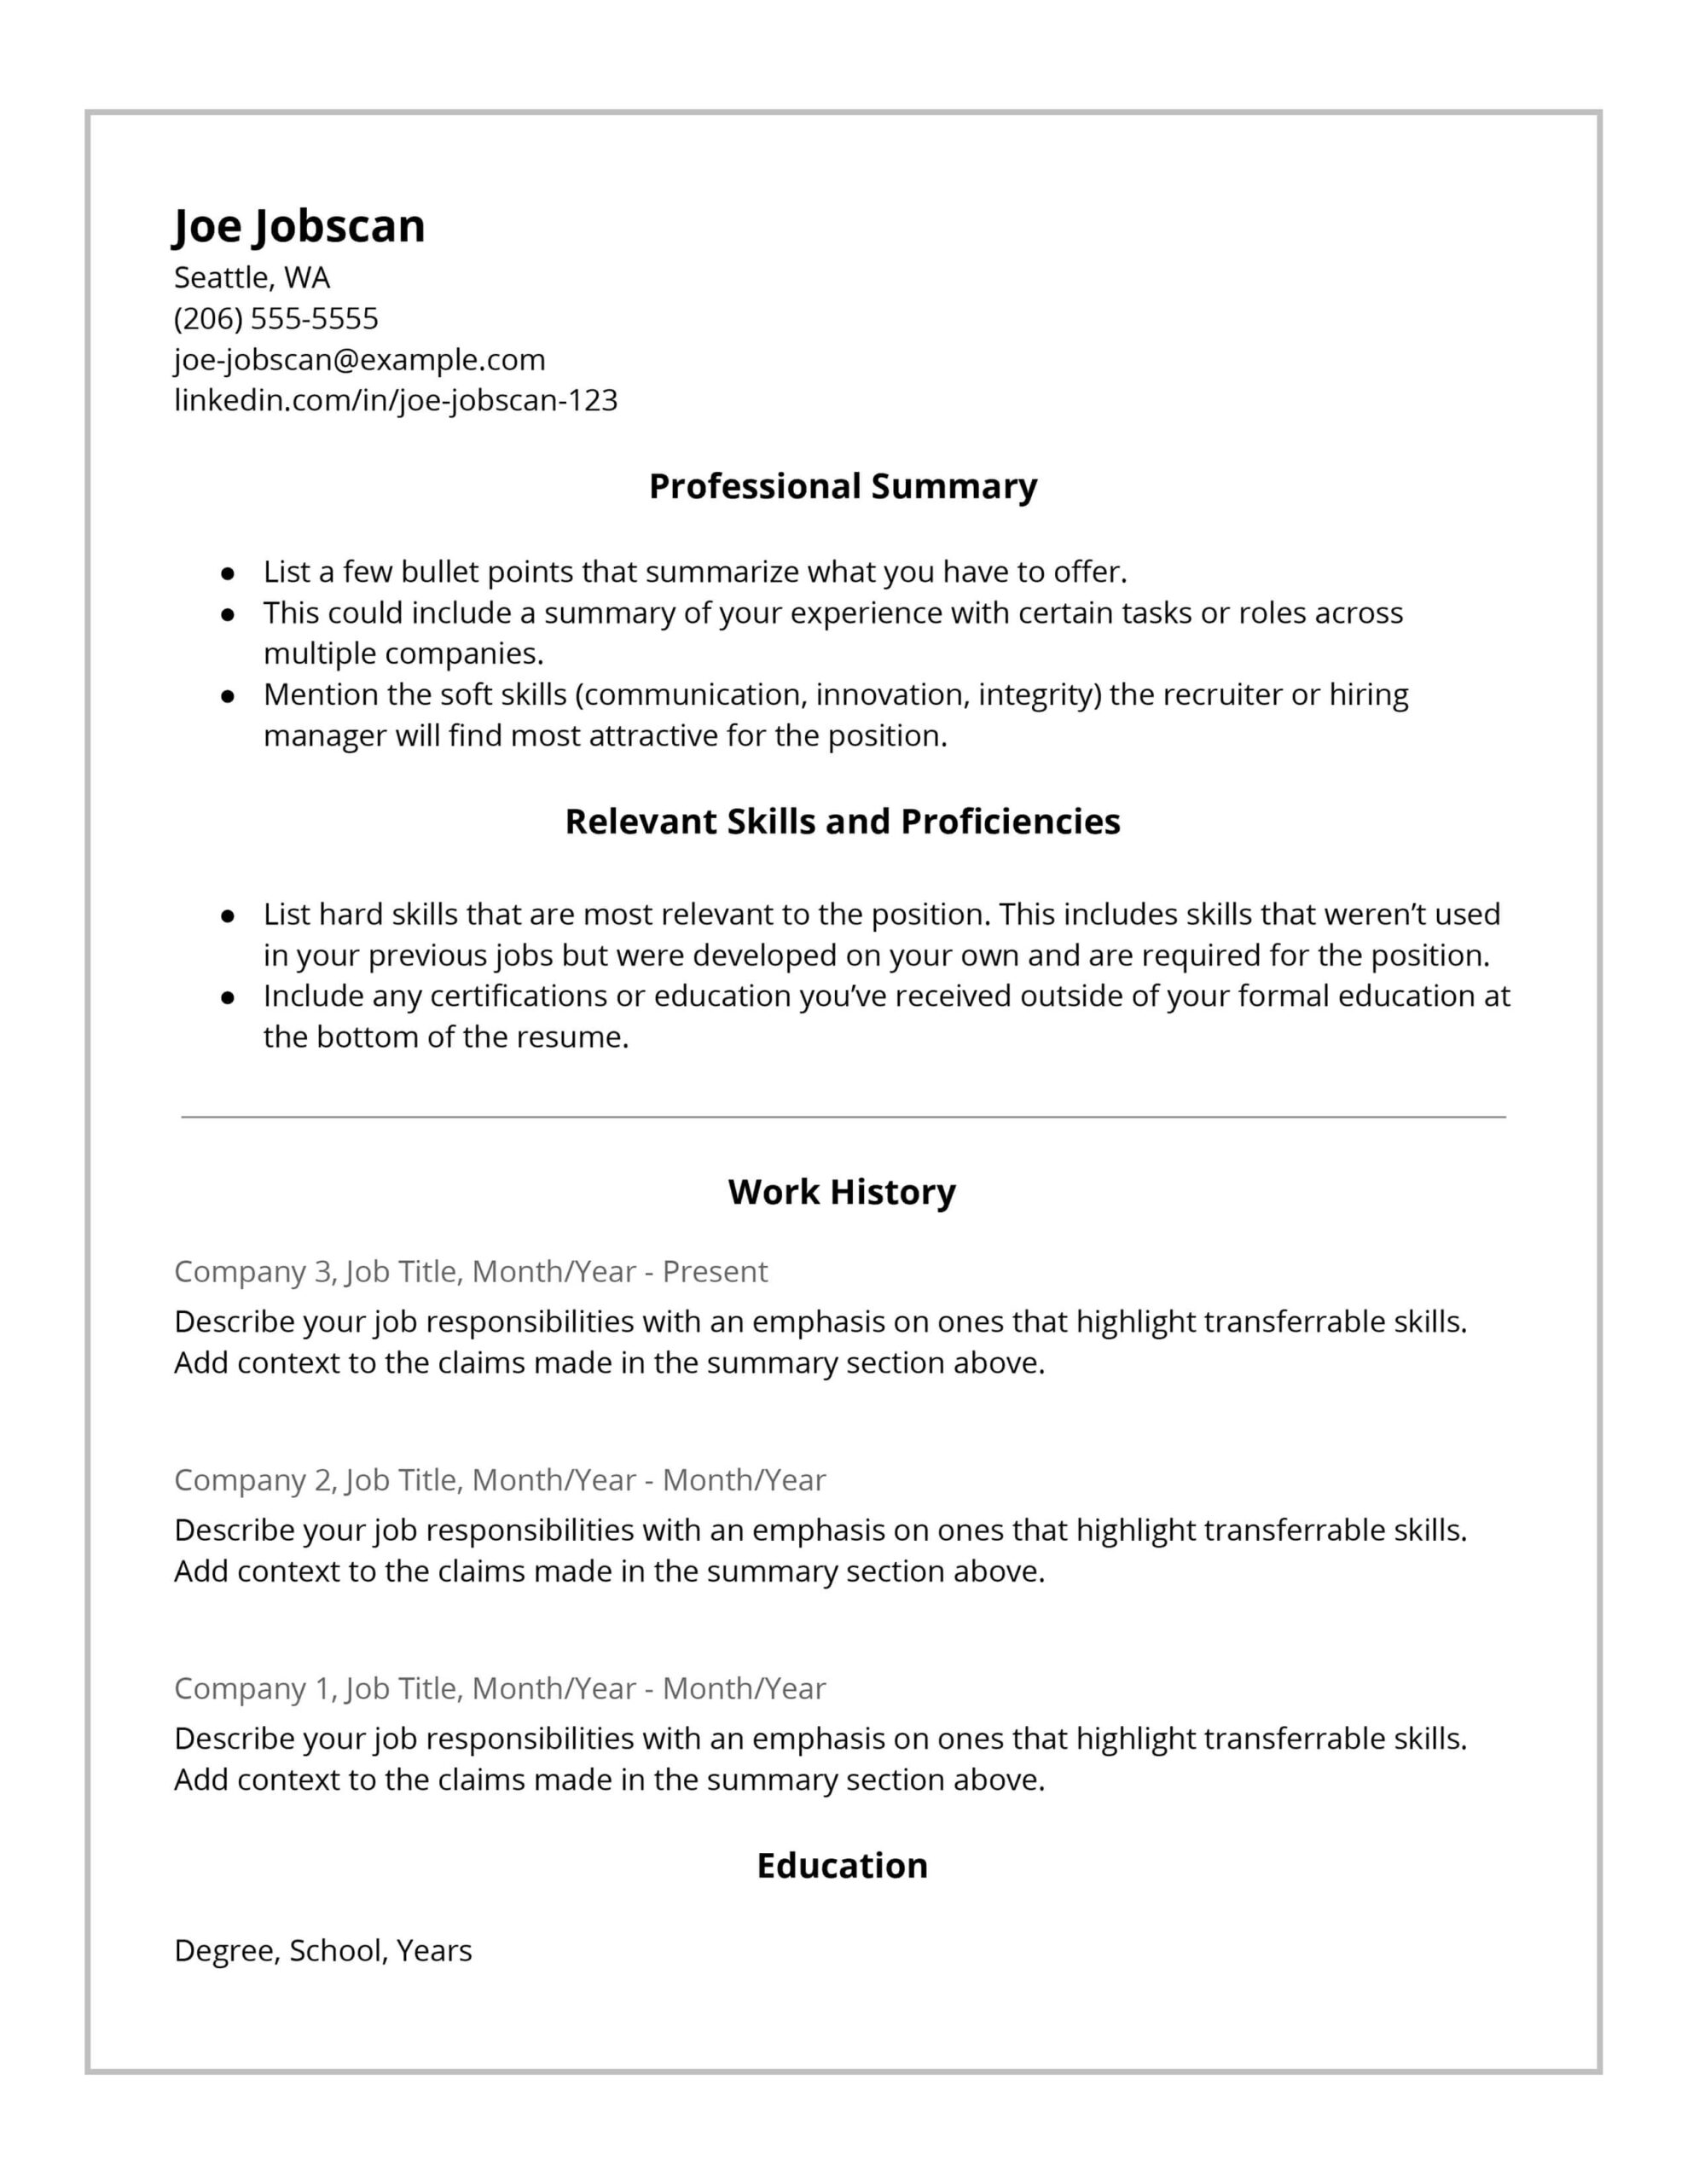 recruiters hate the functional resume format here skills based example hybrid template Resume Skills Based Resume Example